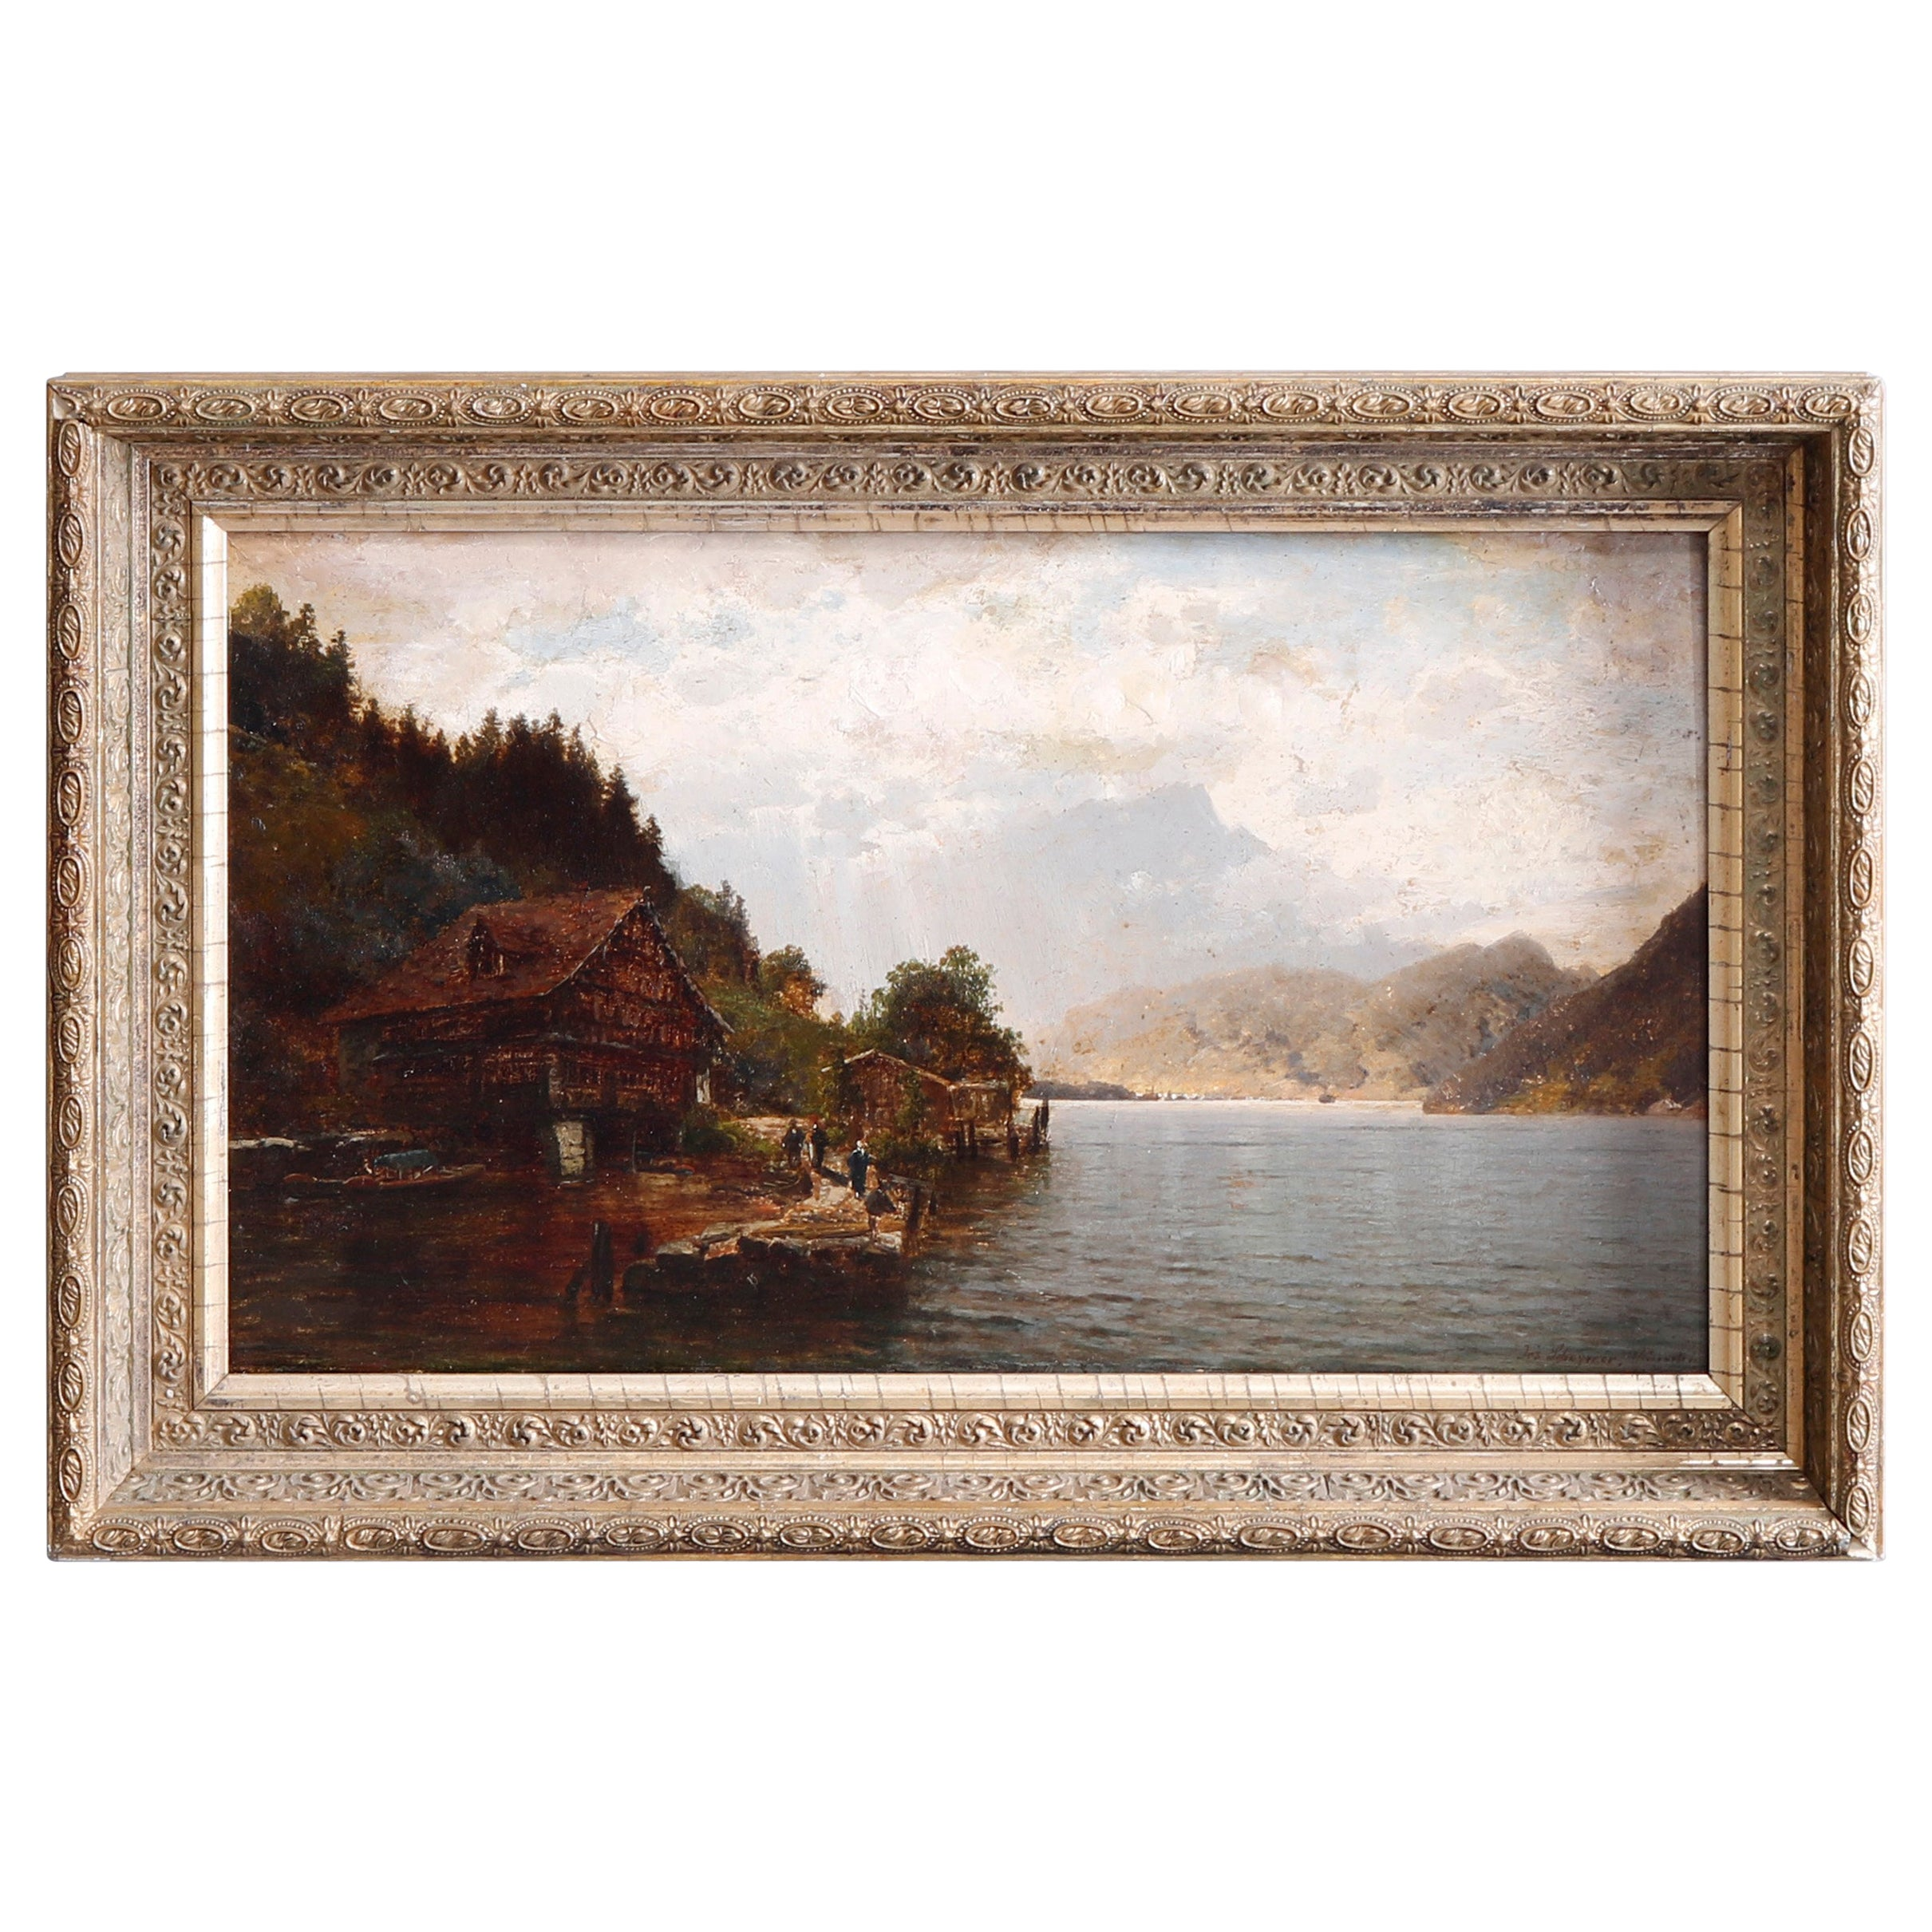 Antique Landscape Painting of Lake by Josef Schoyerer, 19th C